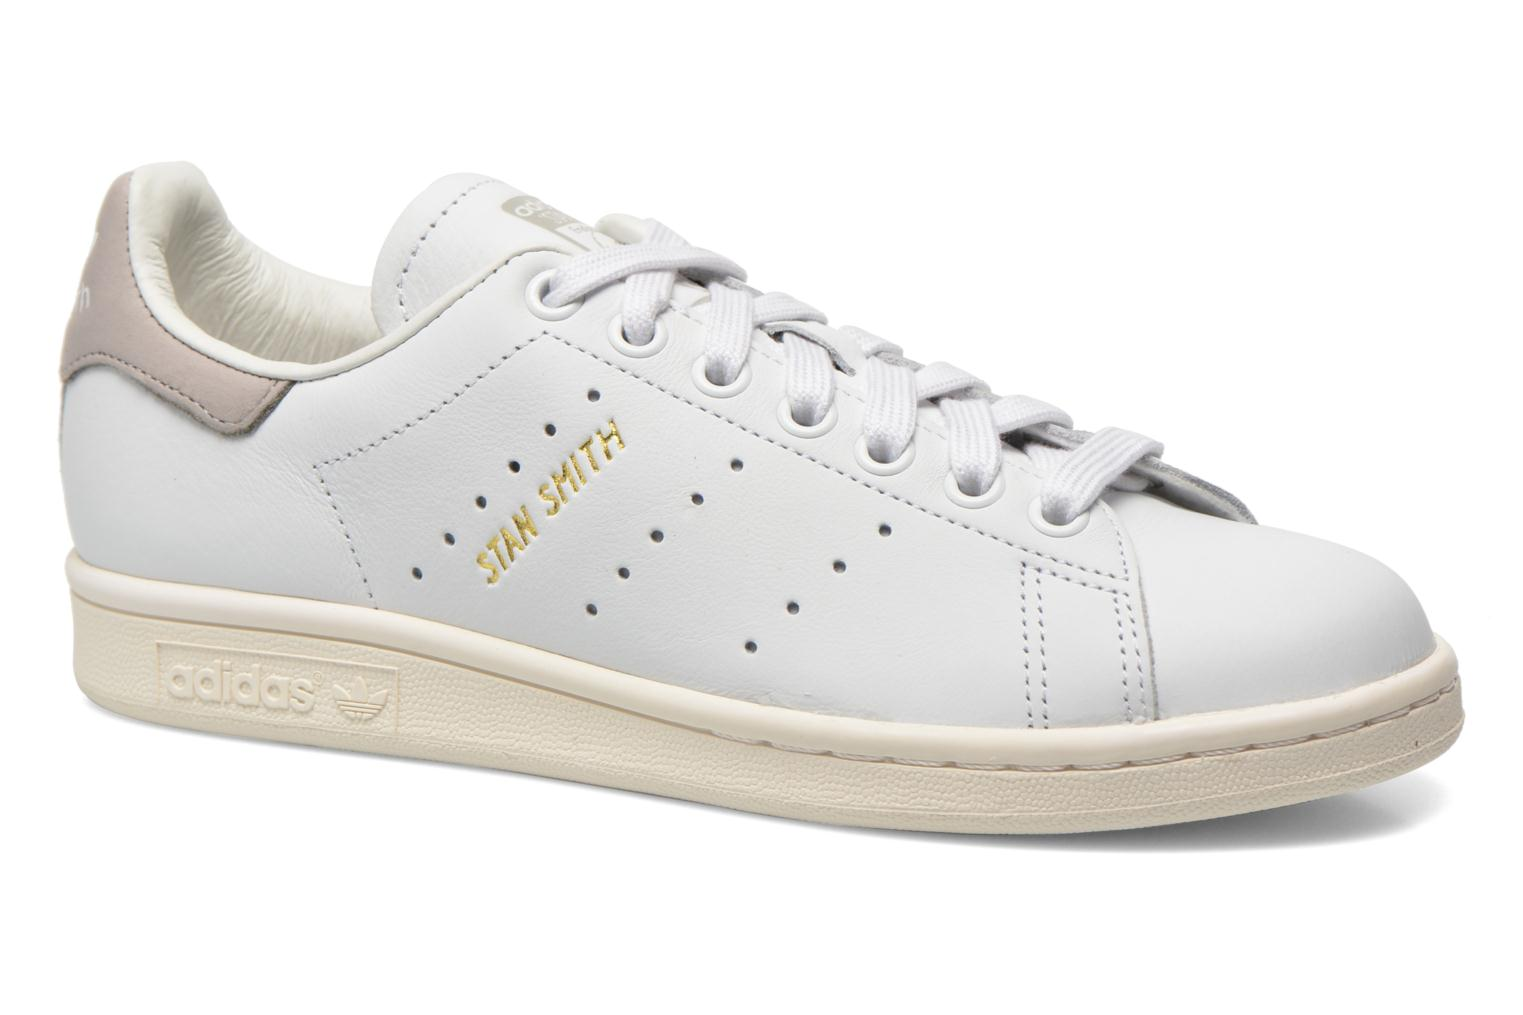 Stan Smith W Ftwbla/Ftwbla/Gracla